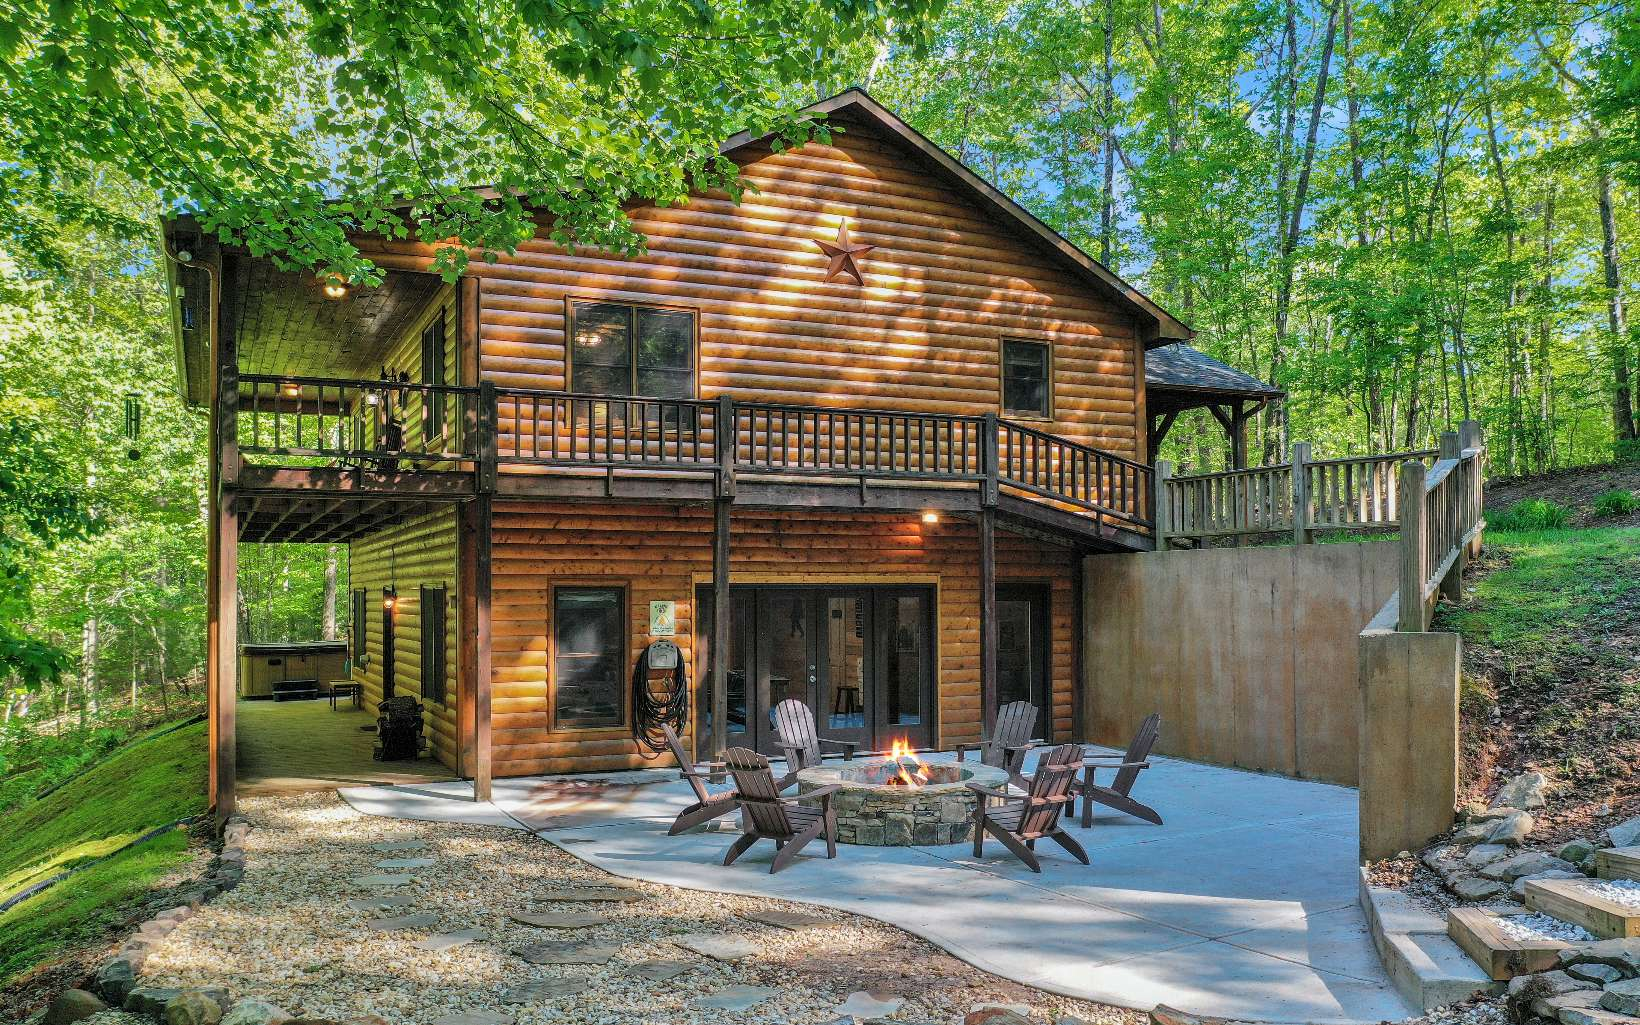 LOCATION & INVESTMENT OPPORTUNITY!! Hidden away in the North Ga mountains is this beautiful, fully furnished, 3 bed 3 bath cabin. This is a cabin that can provide years of enjoyment and relaxation. This cabin is located in the heart of adventure, being less than 2 miles away from public access to our beautiful Lake Blue Ridge, minutes away from Lake Blue Ridge Marina, historic downtown Blue Ridge, USFS hiking trails, and from the Toccoa River. Nestled in the cul-de-sac of a small subdivision named Lake Ridge, this cabin sits on approximately 3.41 acres of gentle laying wooded land. For those relaxing evenings, enjoy the game room, step outside to the hot tub, or maybe just roast some marshmallows over the newly added fire pit. A true place of tranquility and memories. Come get your piece of heaven!